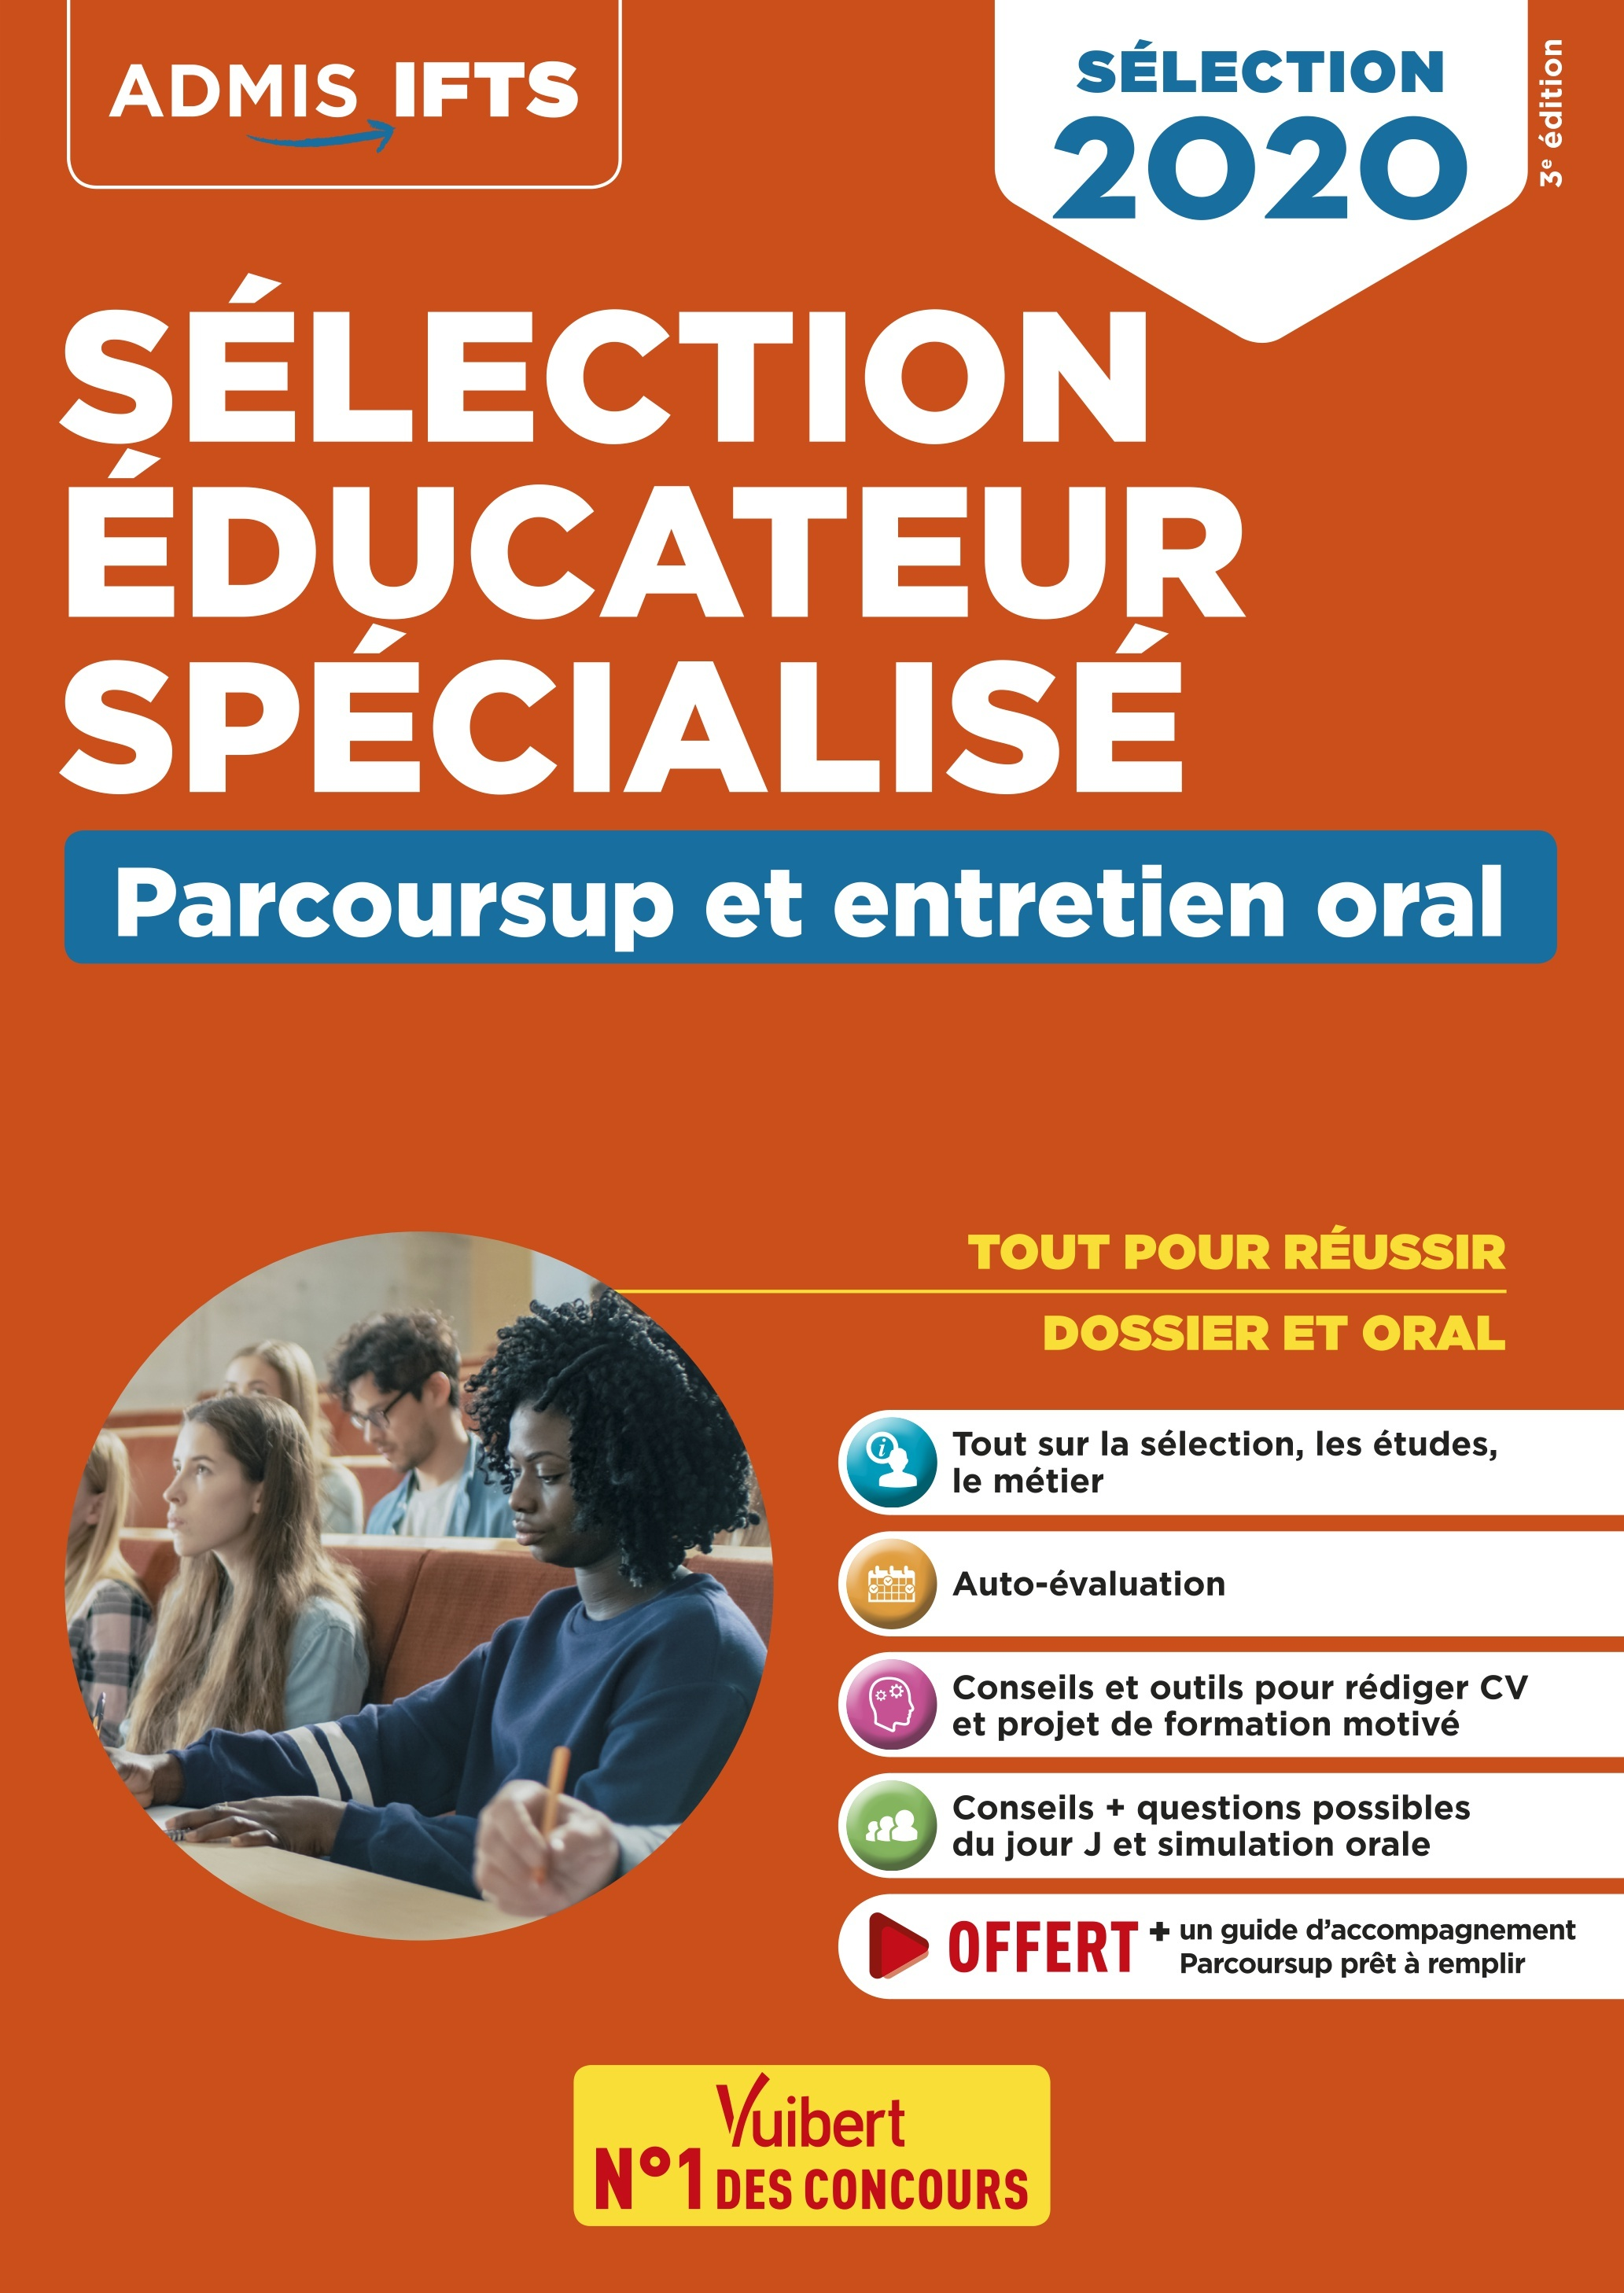 SELECTION EDUCATEUR SPECIALISE SELECTION 2020